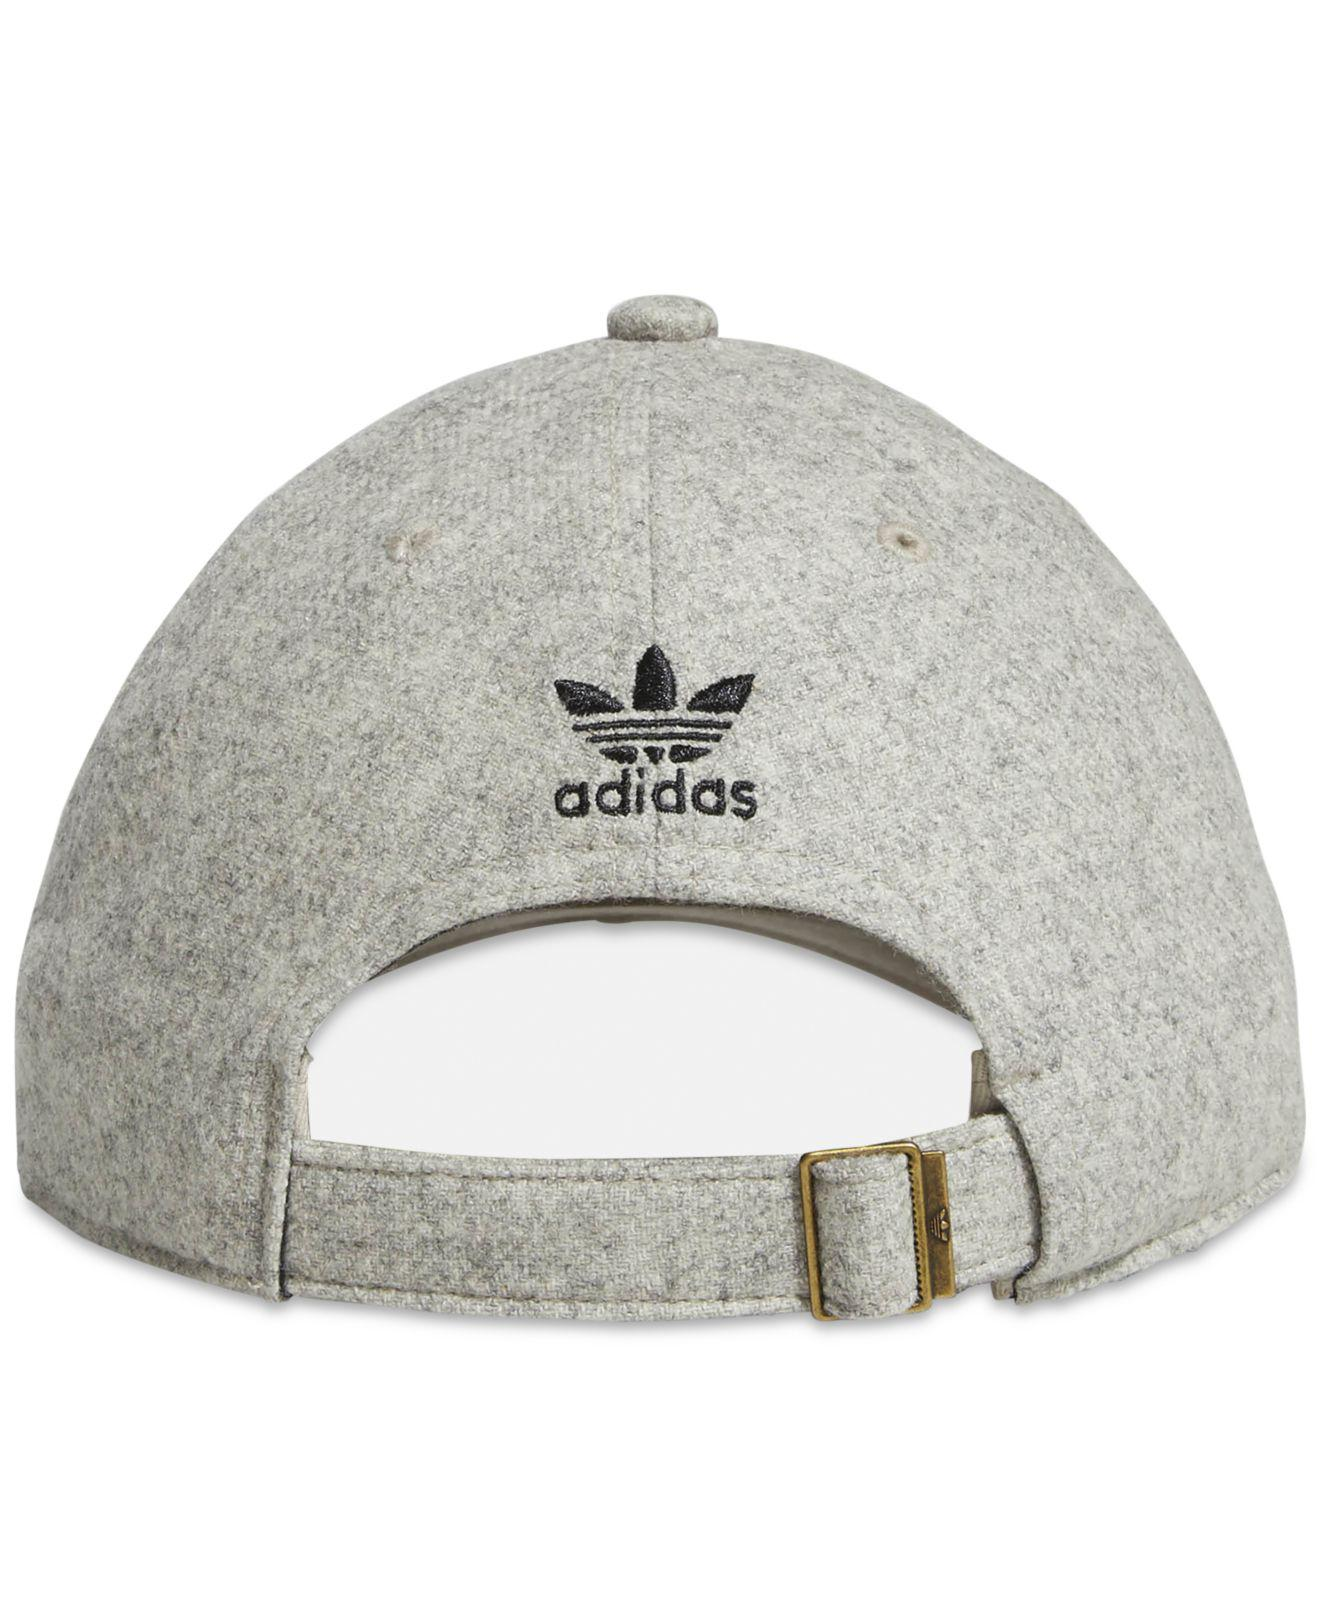 15ef7522 Lyst - adidas Originals Relaxed Treifoil Hat in Gray for Men